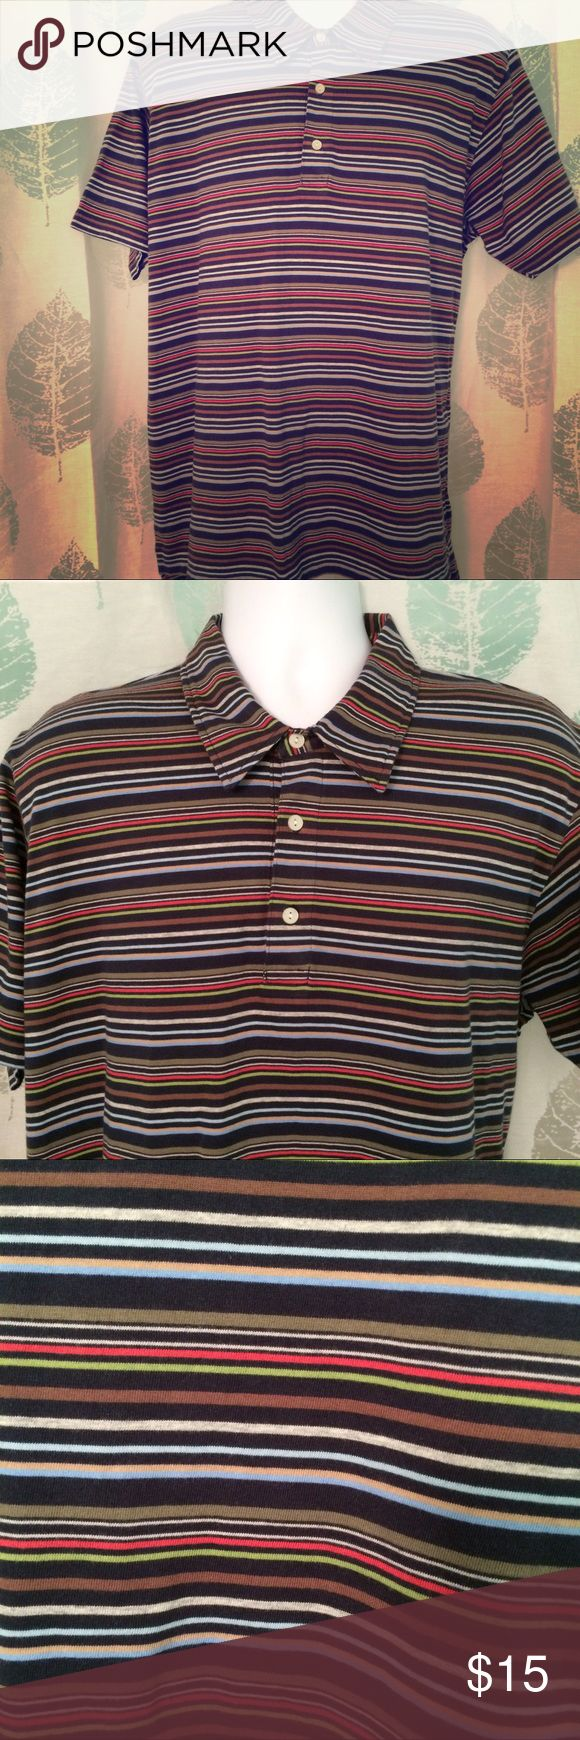 J CREW Mens L multicolor striped polo shirt Very nice polo for men  Size L  Vibrant multicolored stripes  Matches almost anything!  Cotton  Excellent condition J. Crew Shirts Polos